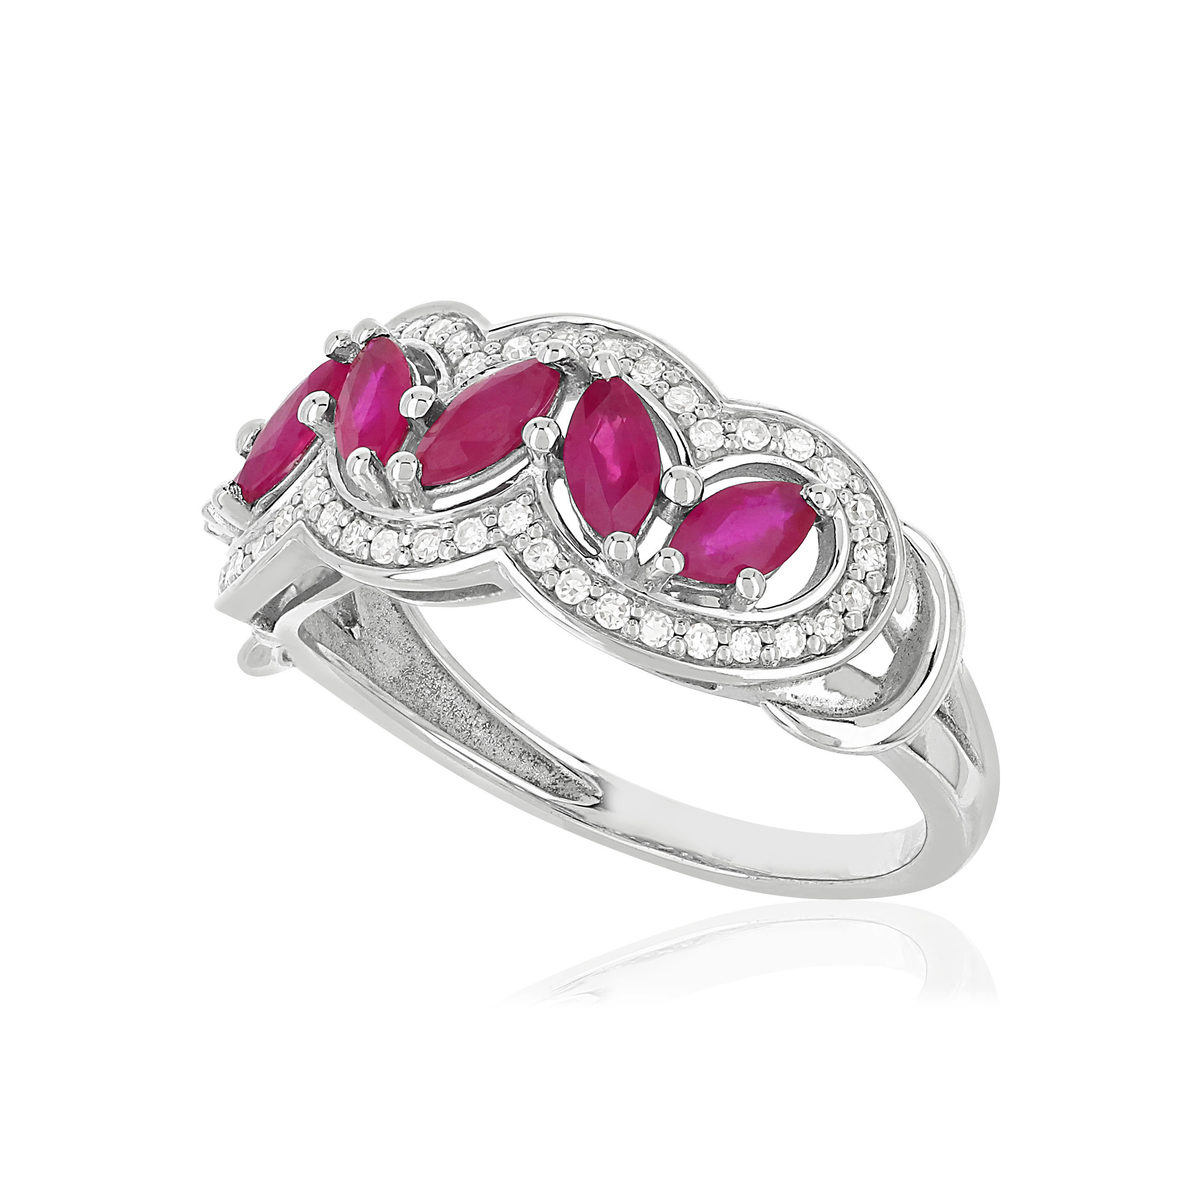 Bague MATY Or 750 blanc Rubis et Diamants - vue VD1